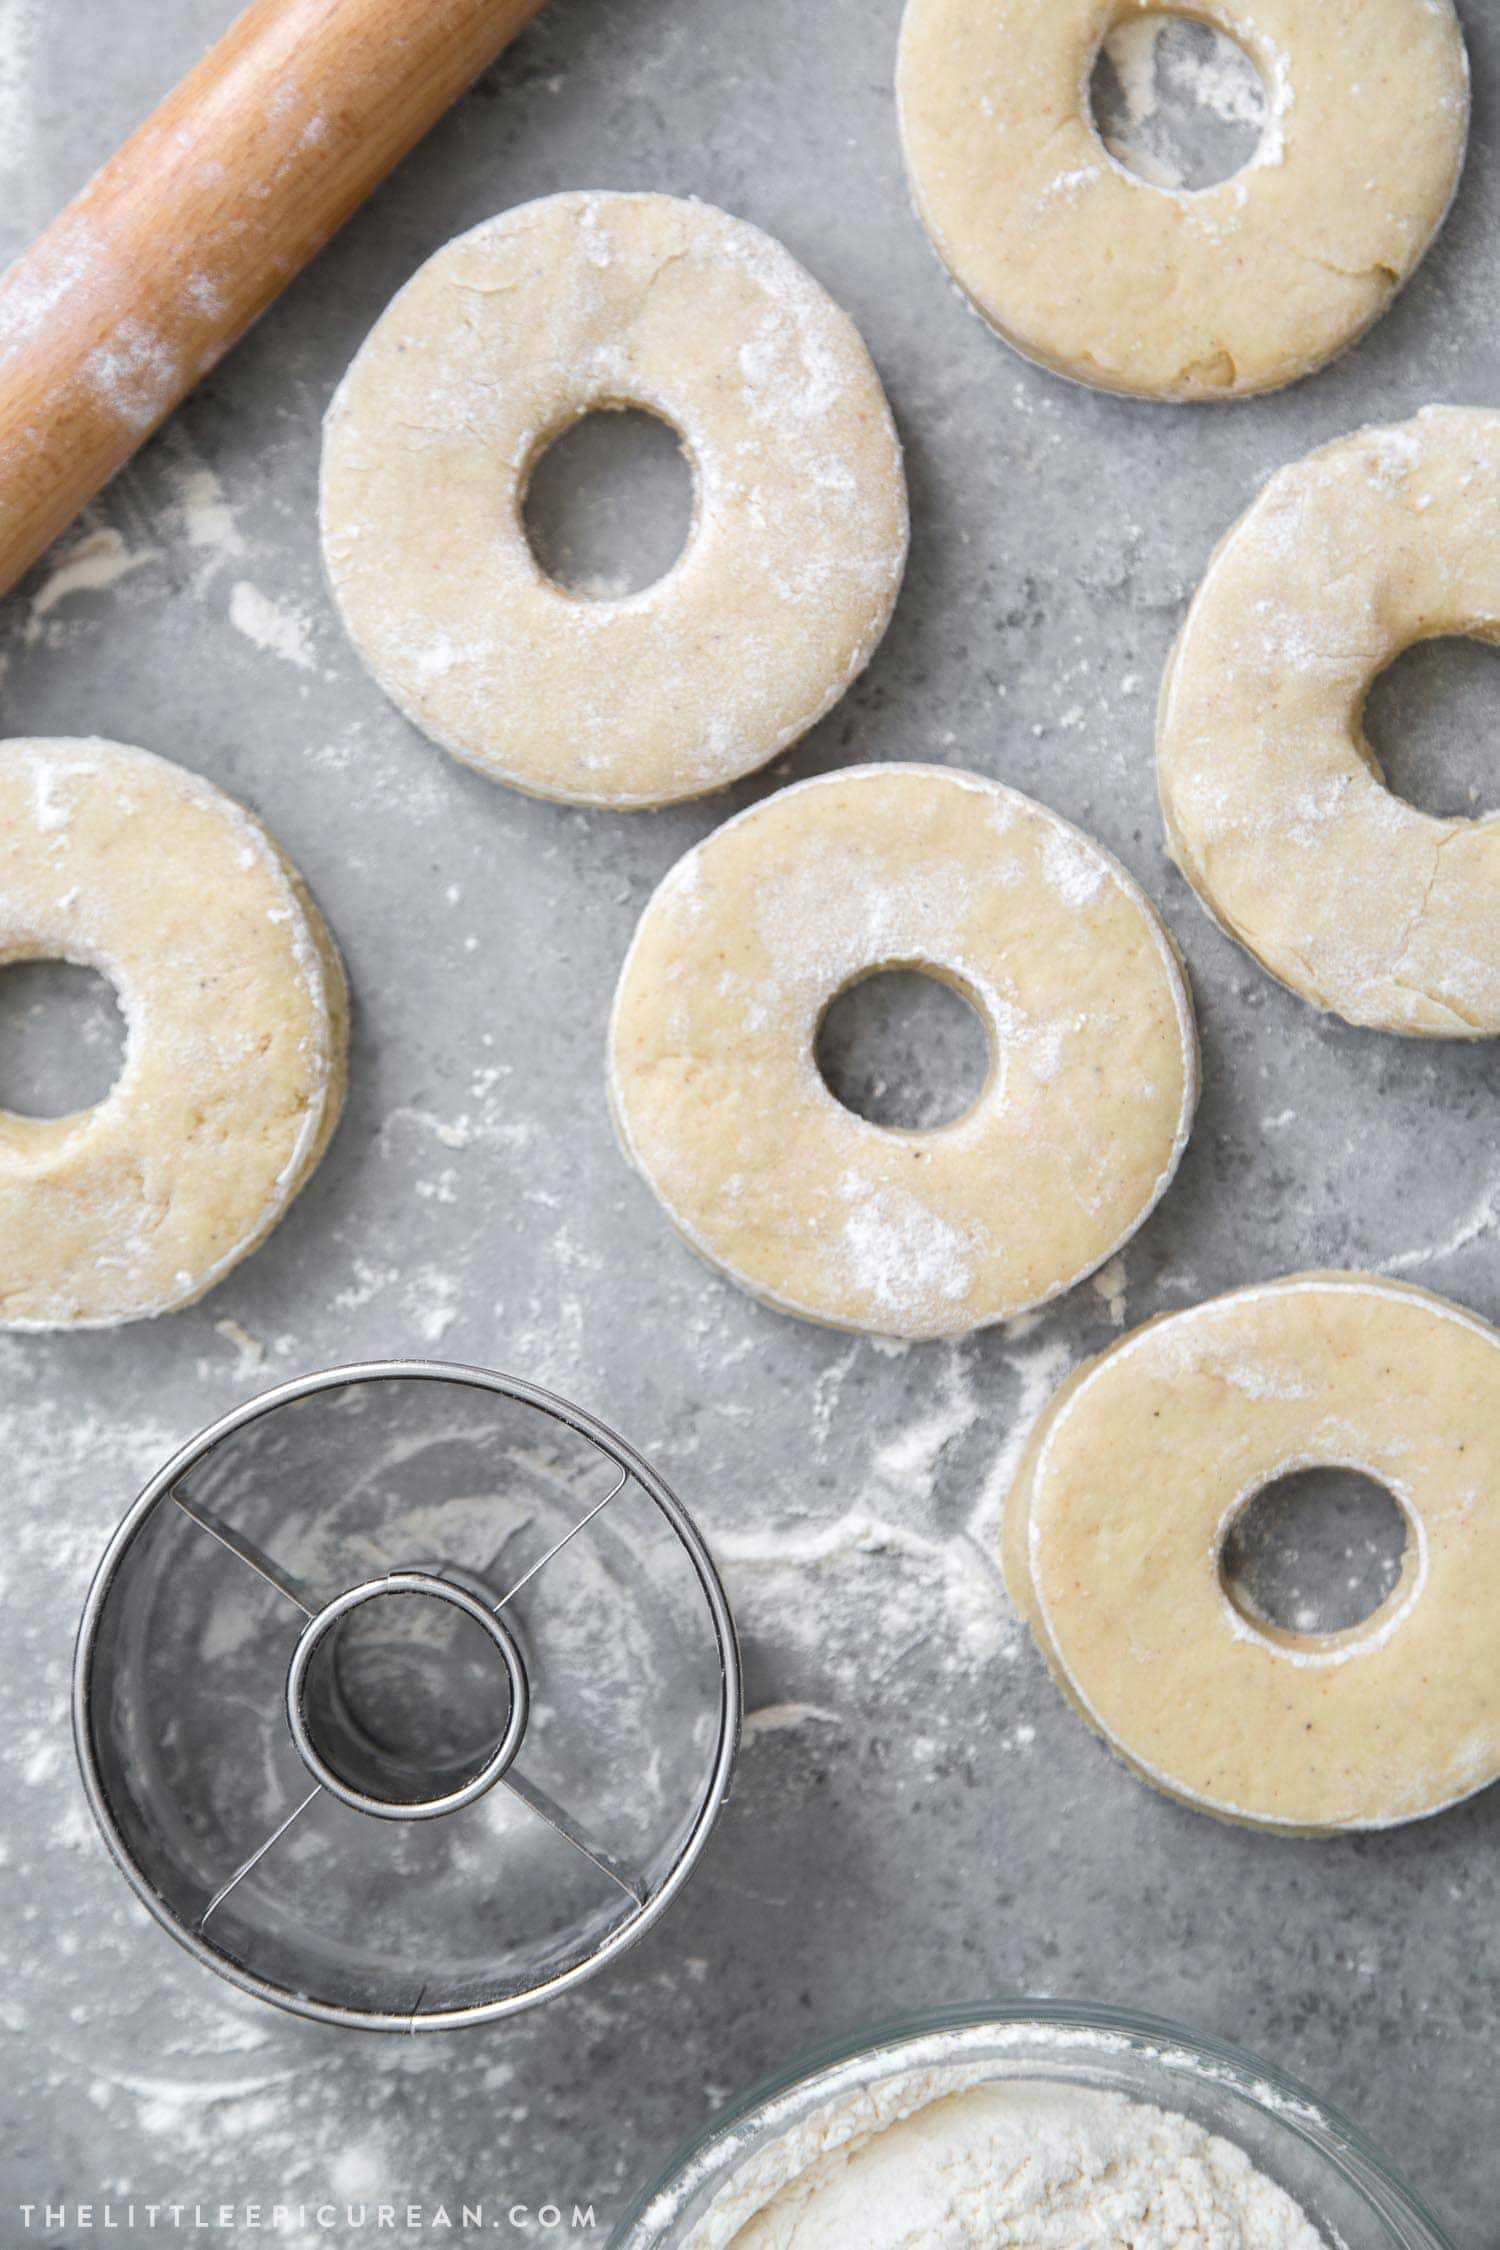 Old fashioned donuts dough before frying.